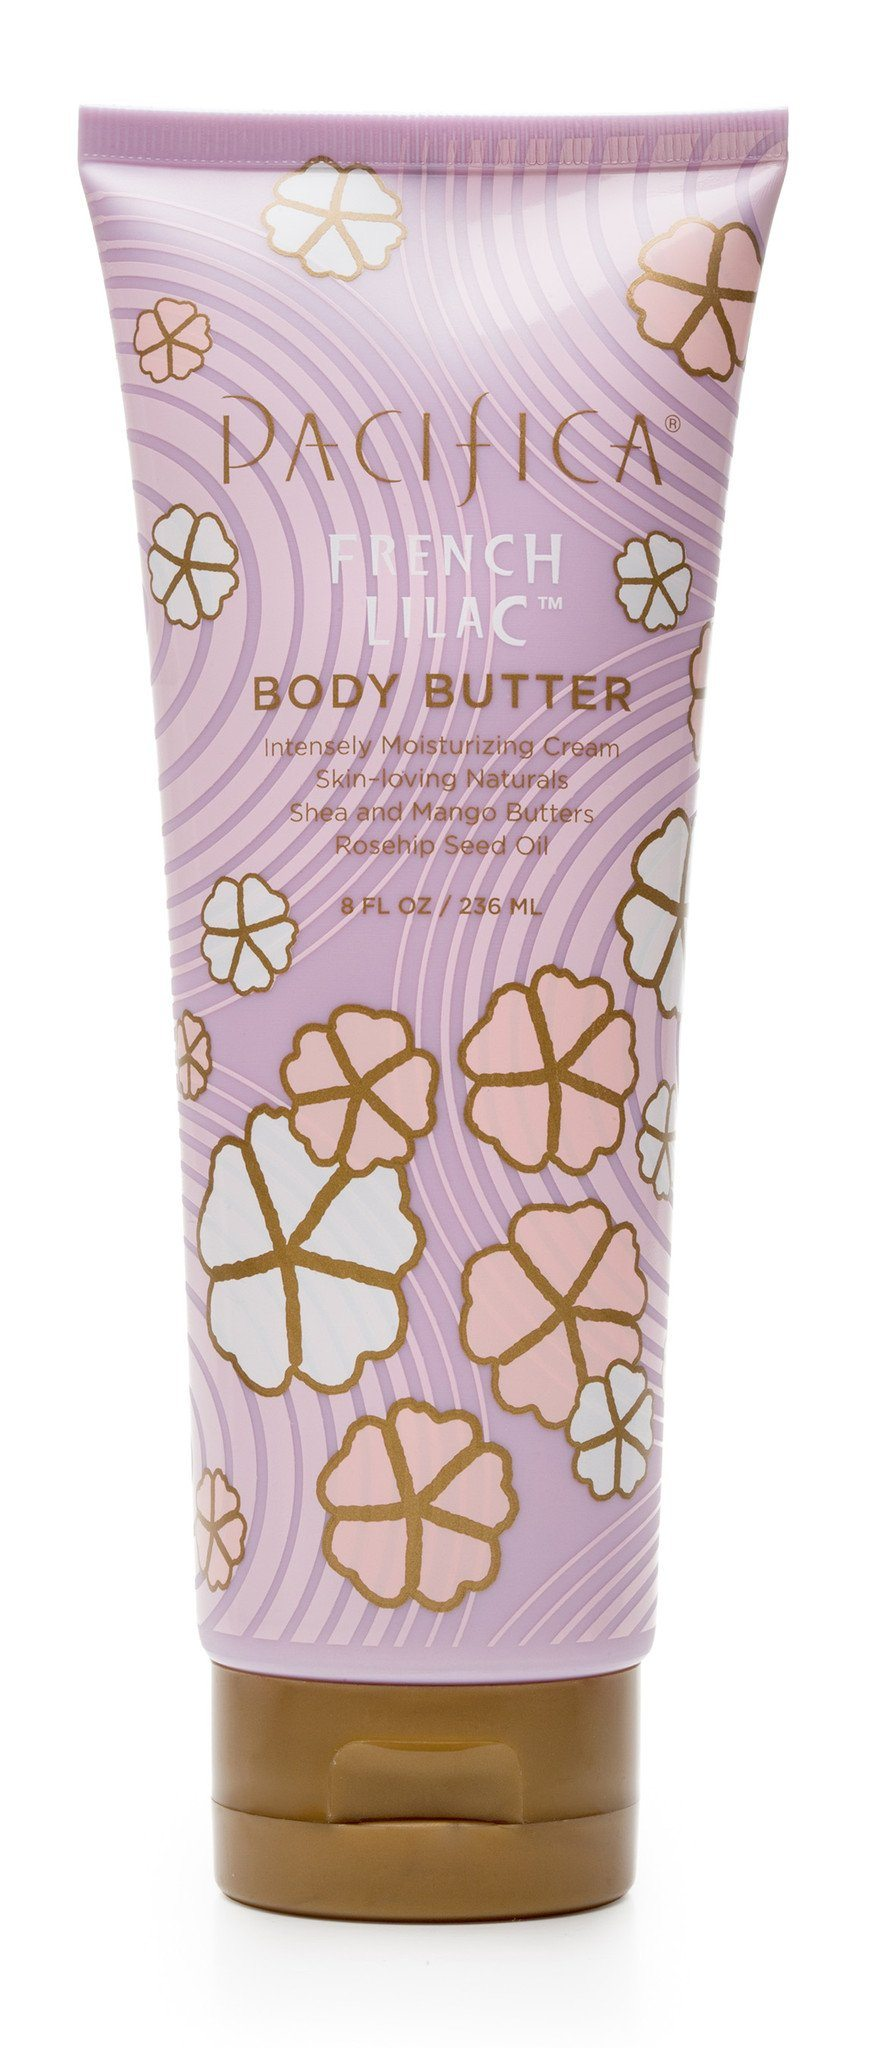 Personal Care,Food & Drink - Pacifica - French Lilac Body Butter, 236ml